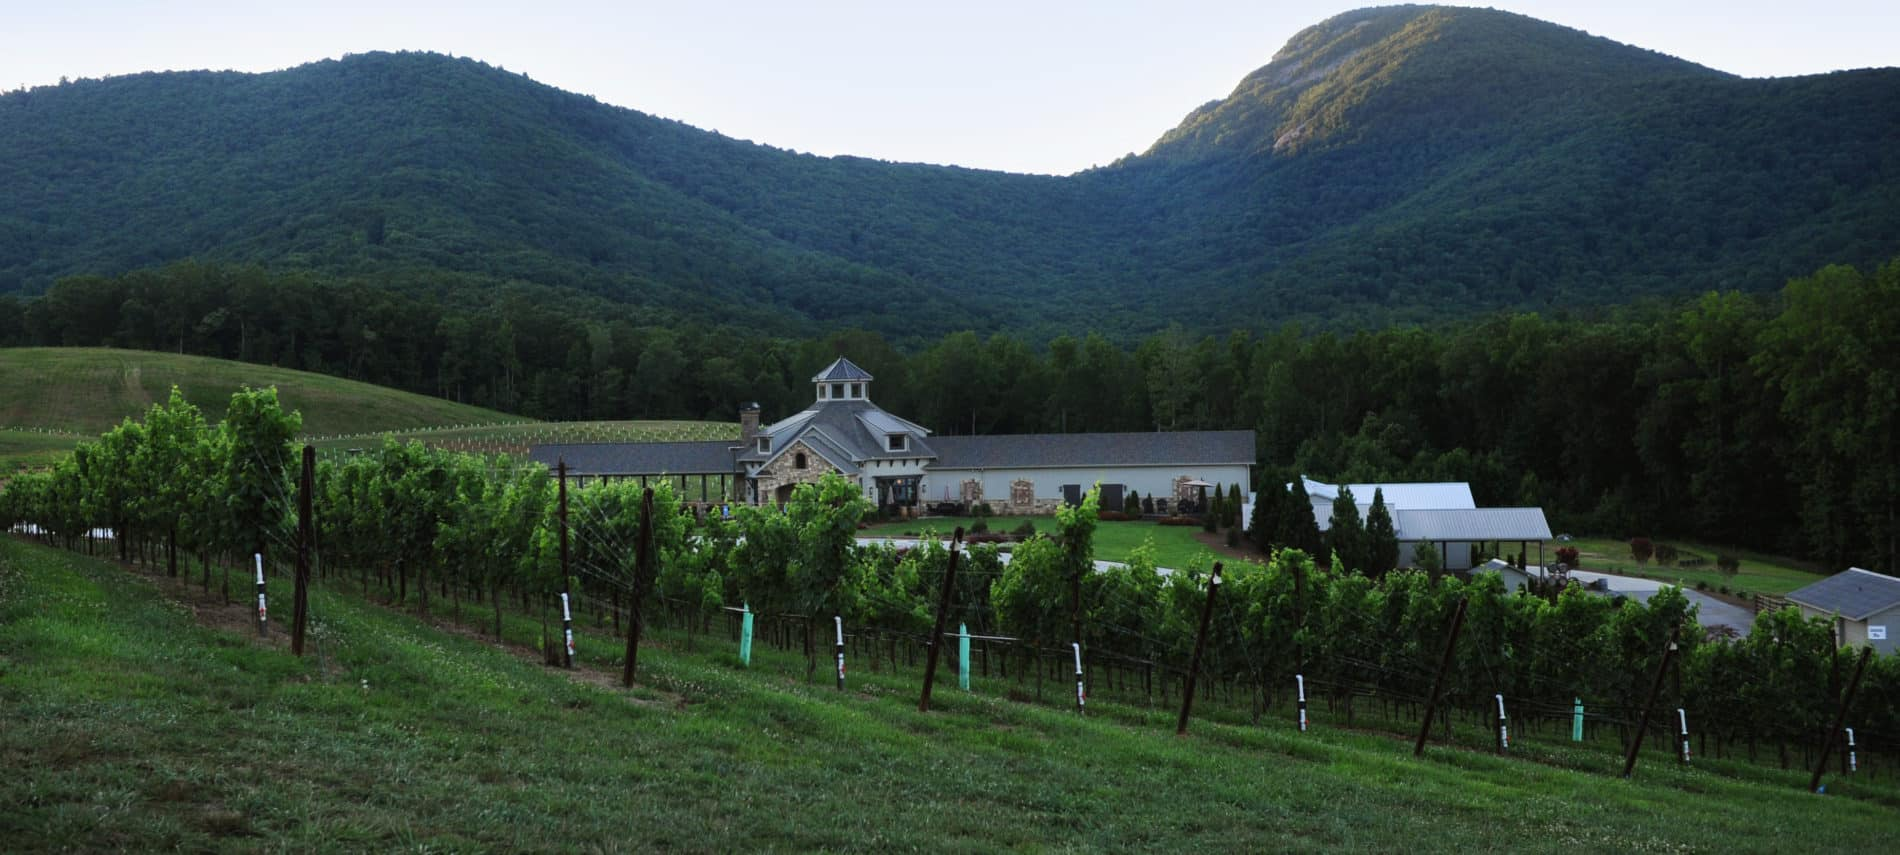 PHOTO OF THE VINEYARDS AT YONAH MOUNTAIN WINERY.